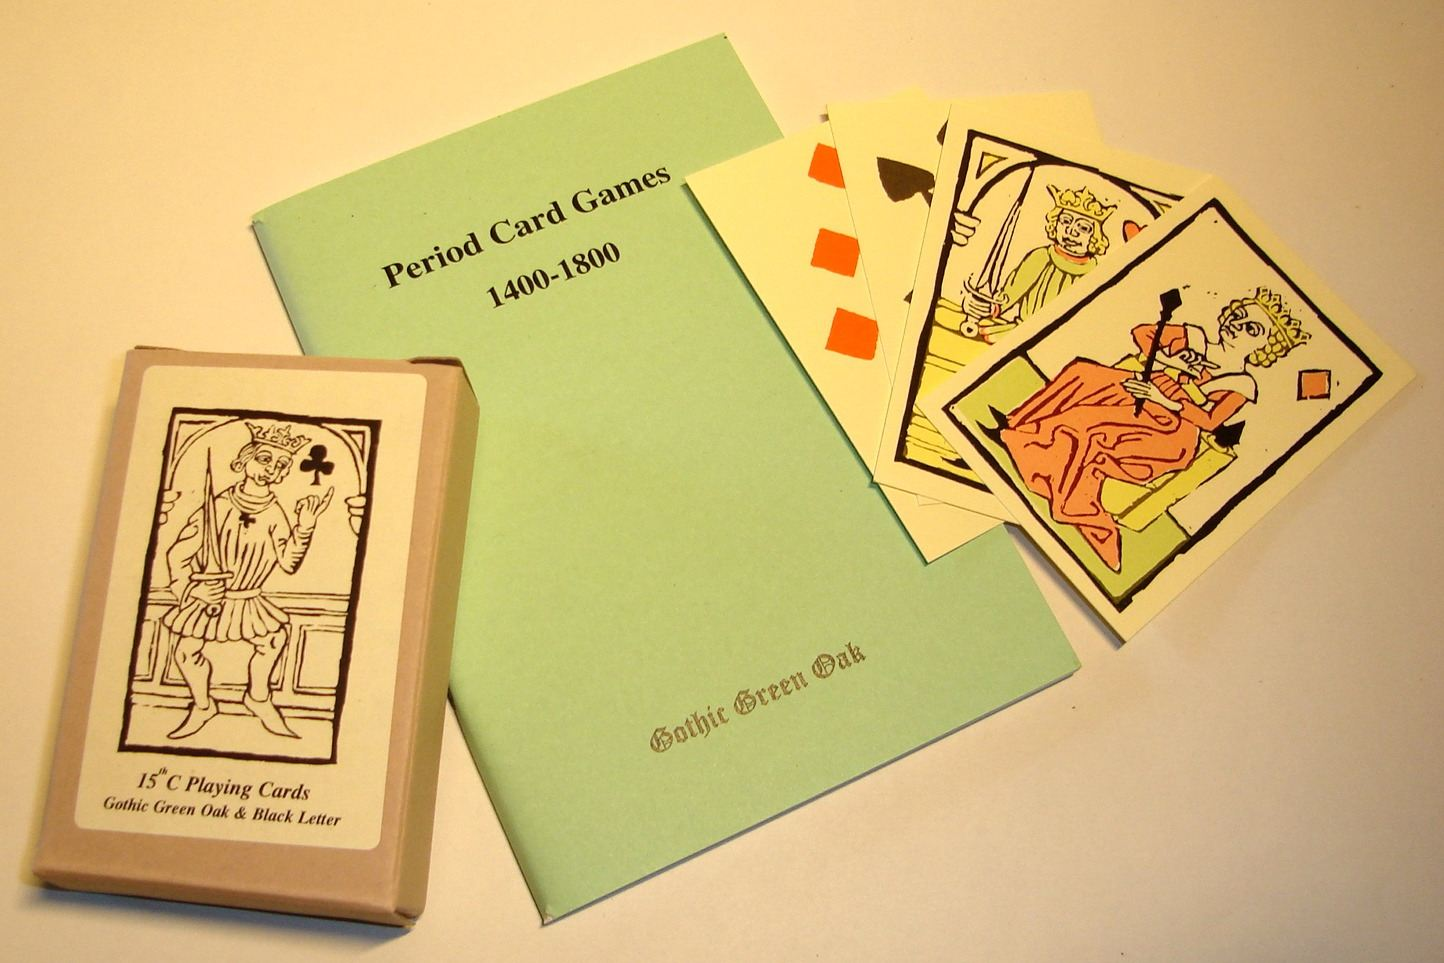 Fifteenth century playing cards with historic card games rule book